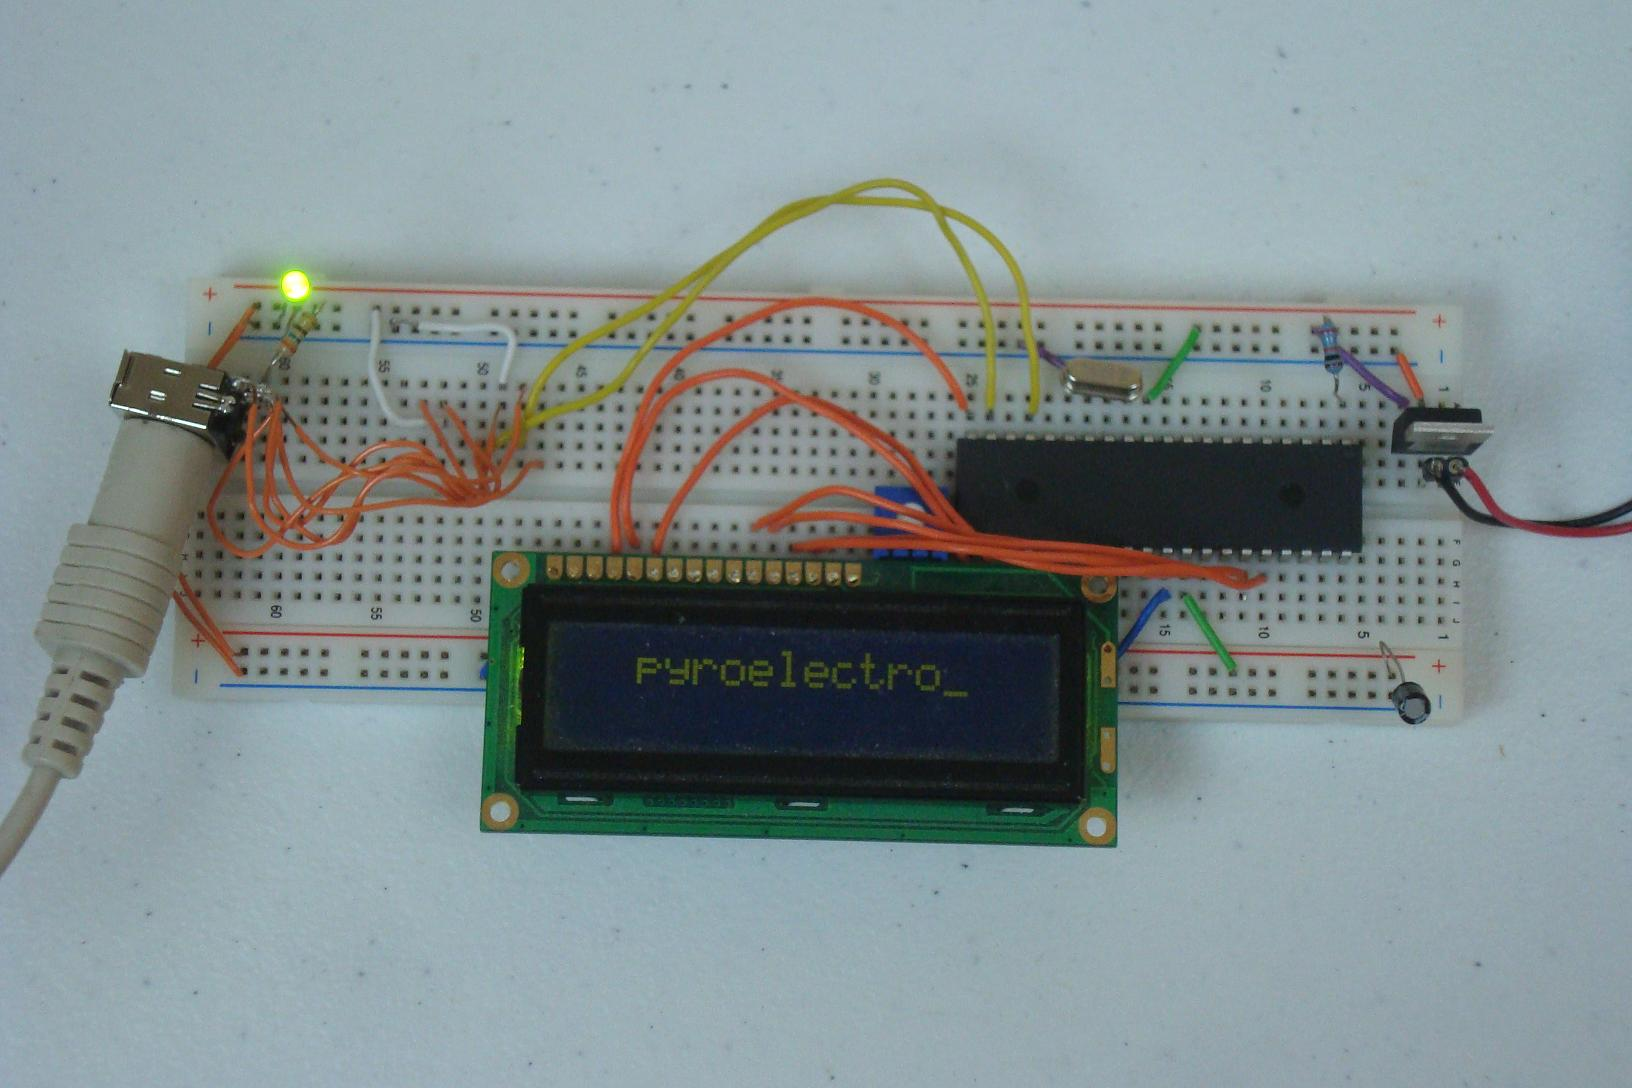 Ps 2 Keyboard To 16x2 Lcd Introduction Pyroelectro News Simple Pic Usb Interface Schematic Projects Main Board